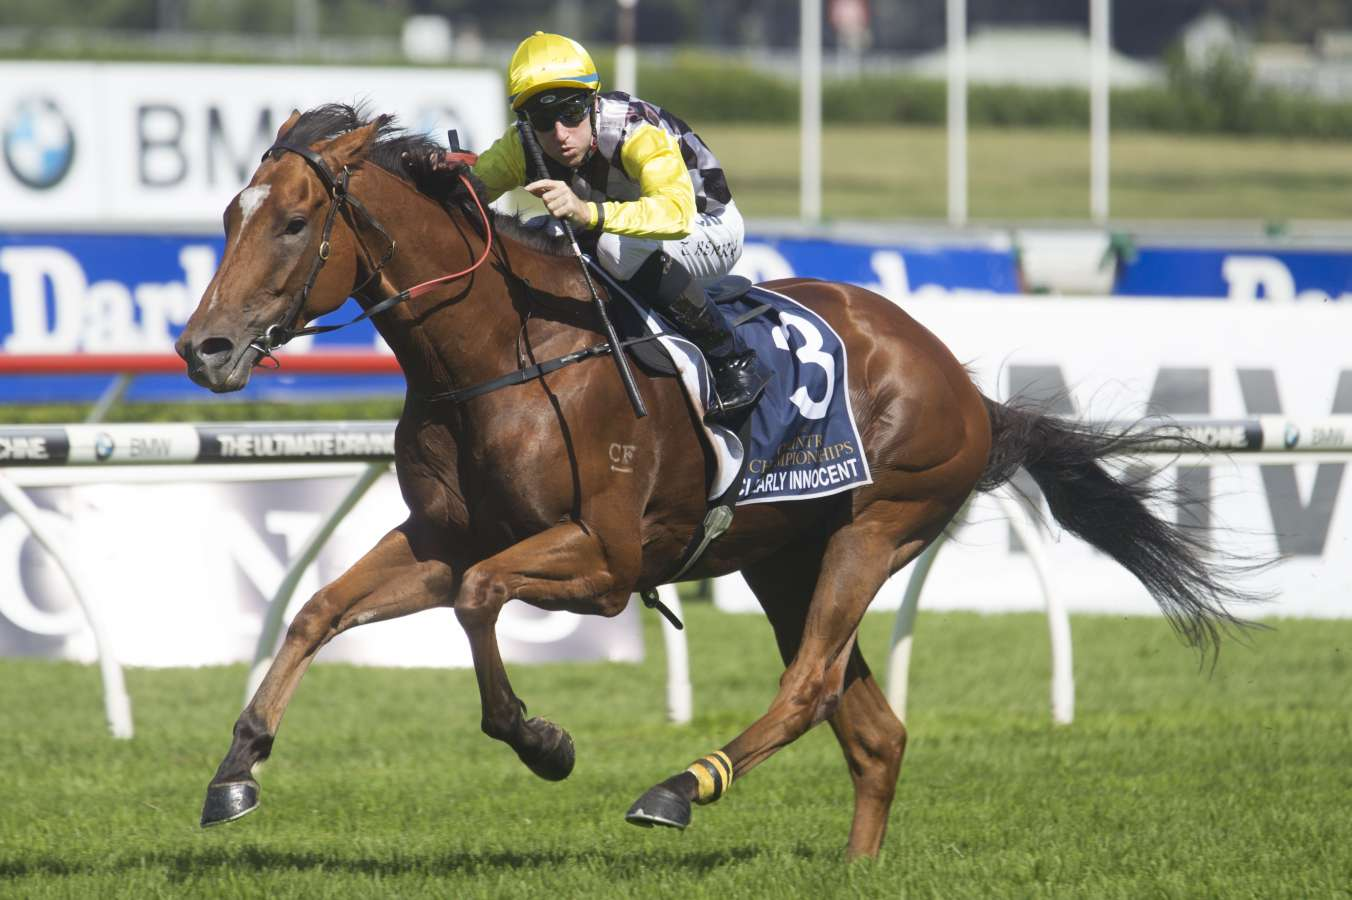 Clearly a case for Stradbroke